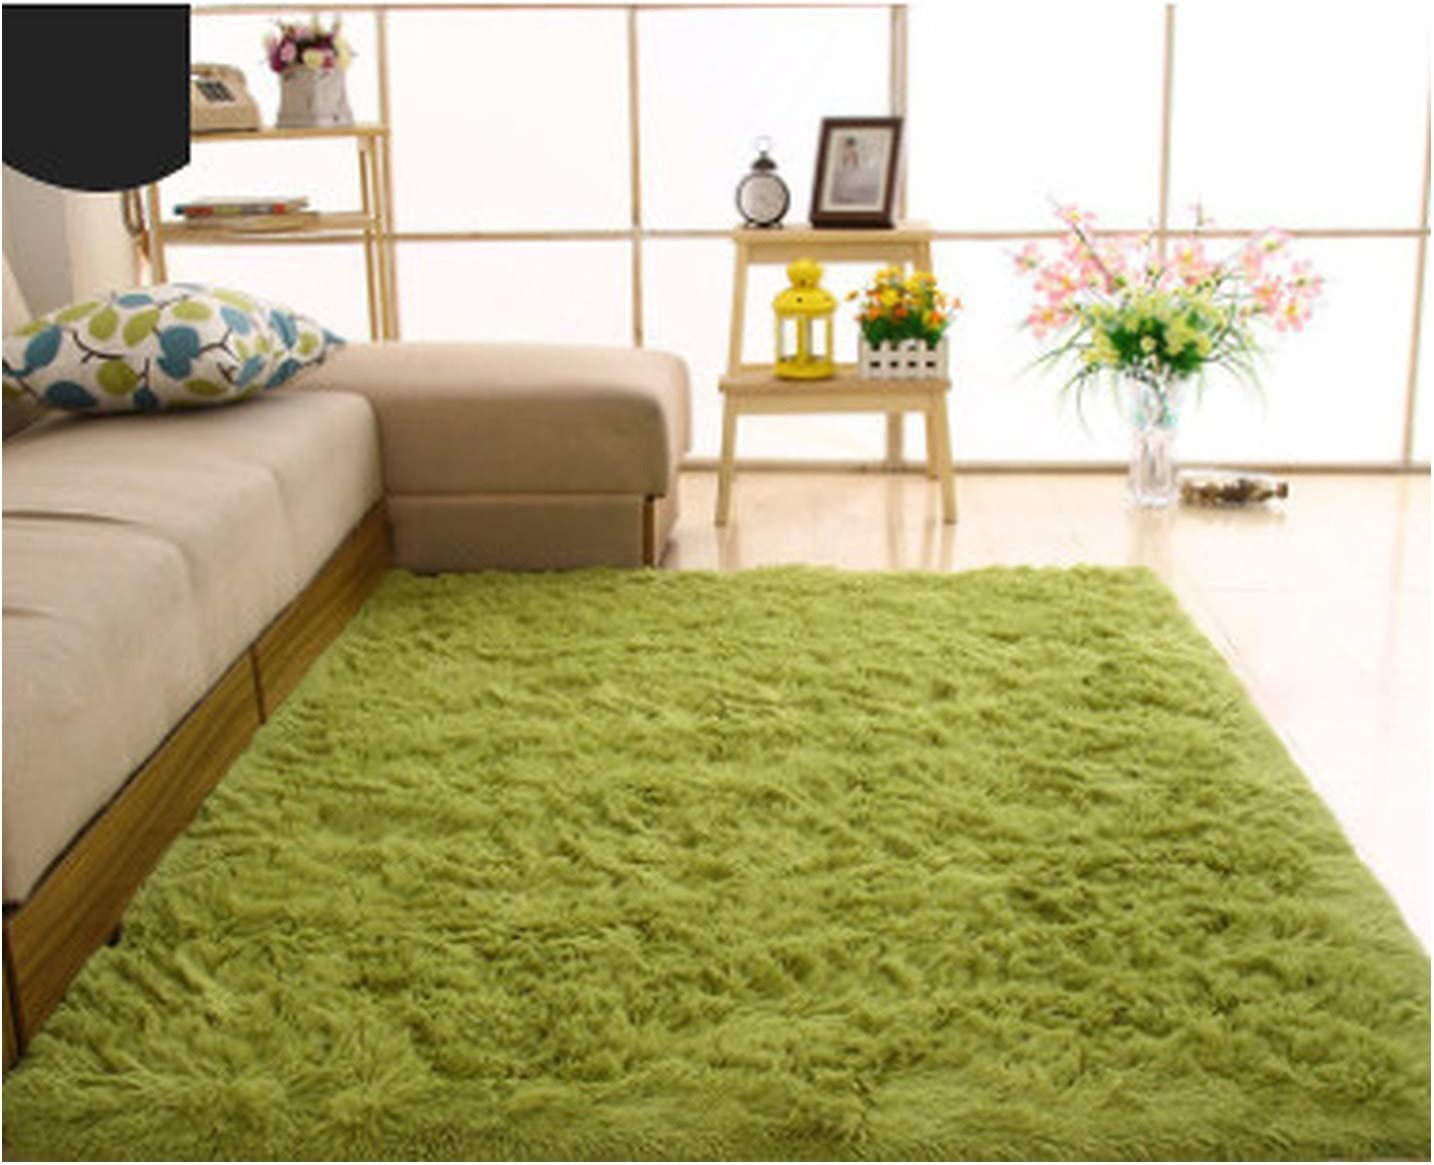 Plush Soft Shaggy Alfombras Carpet for Living Room Bedroom Warm Faux Fur Area Rug Non-Slip Mats for Home Decoration Supplies,Fruit Green,50cmx120cm